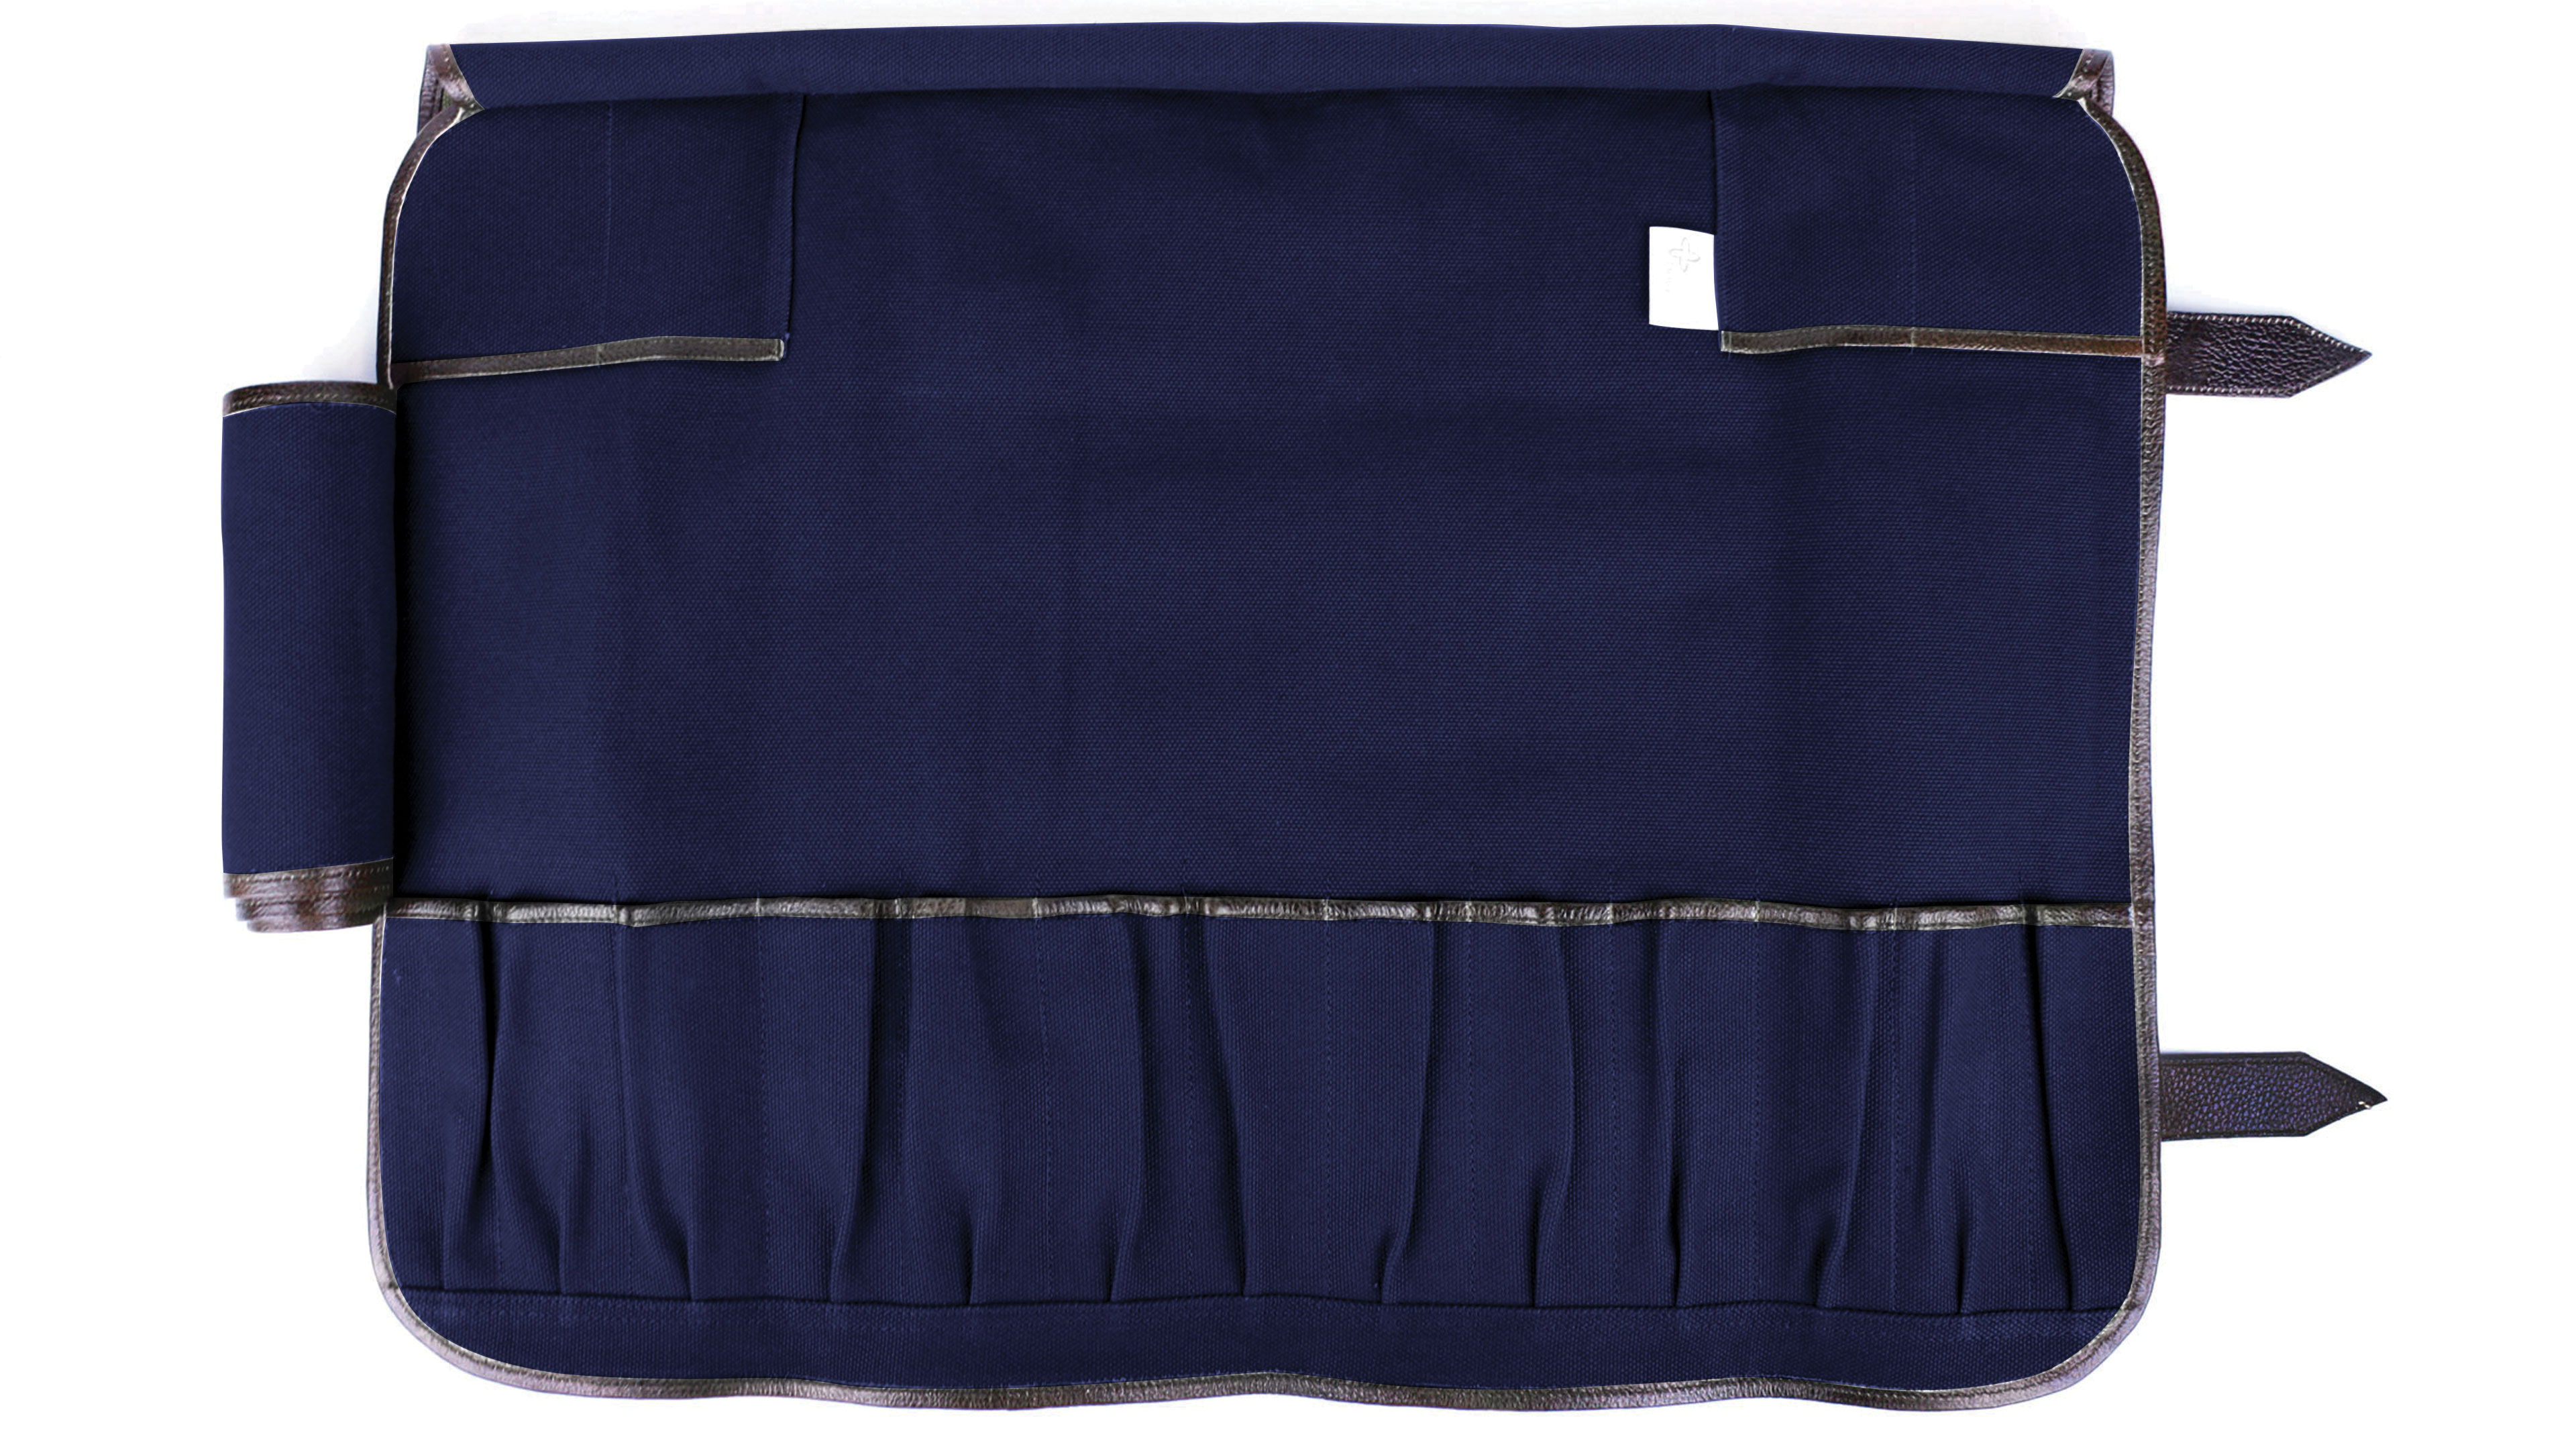 Boldric Canvas Knife Bag 17 Pocket Navy Cutlery And More